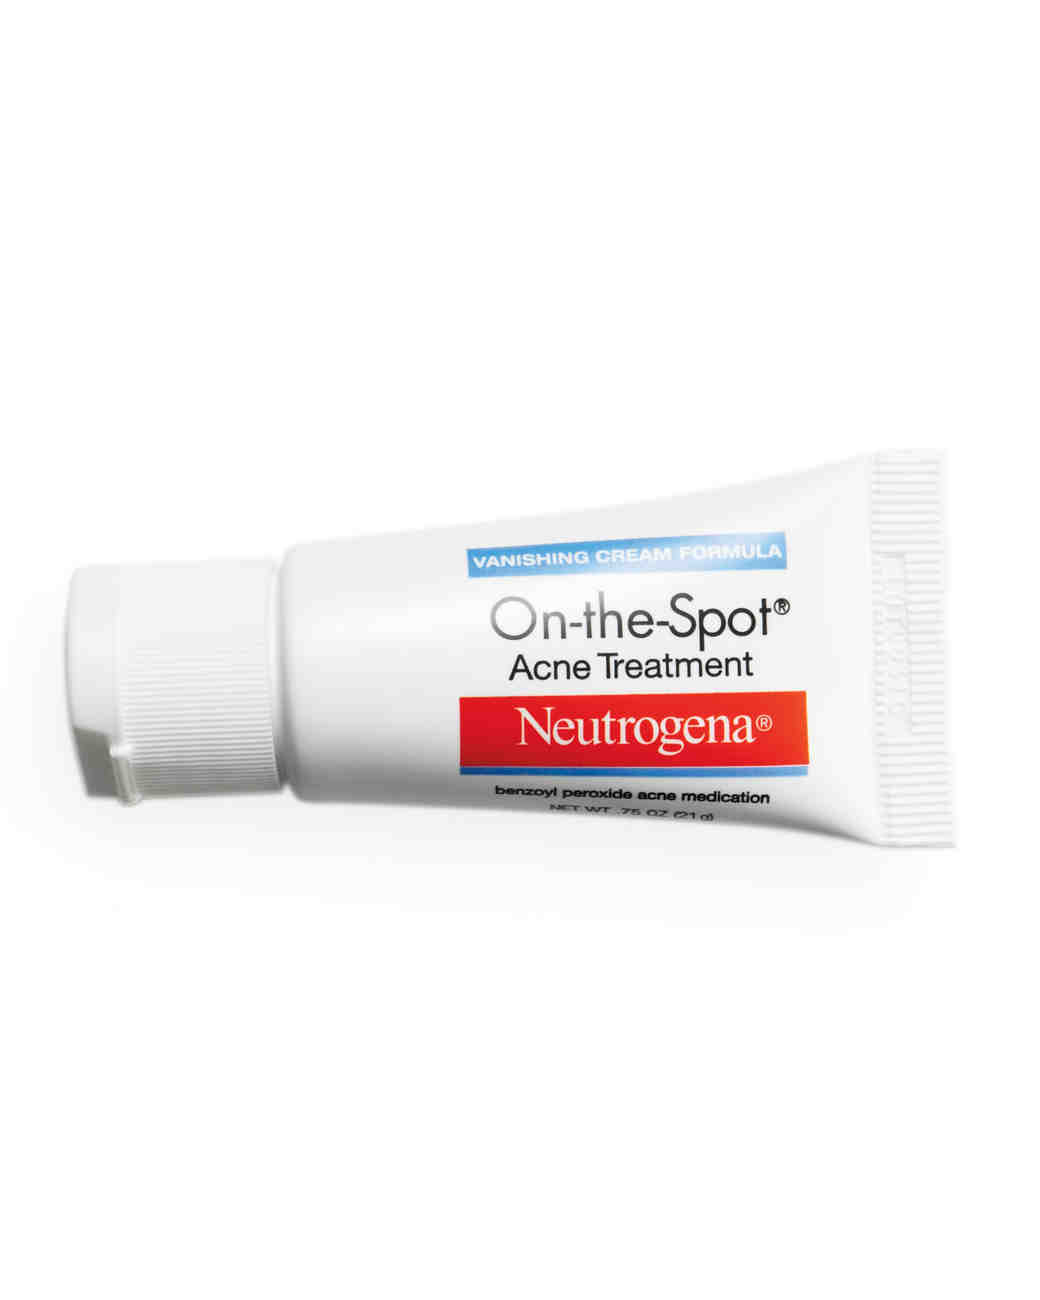 neutrogena-acne-treatment-002-mwd109767.jpg